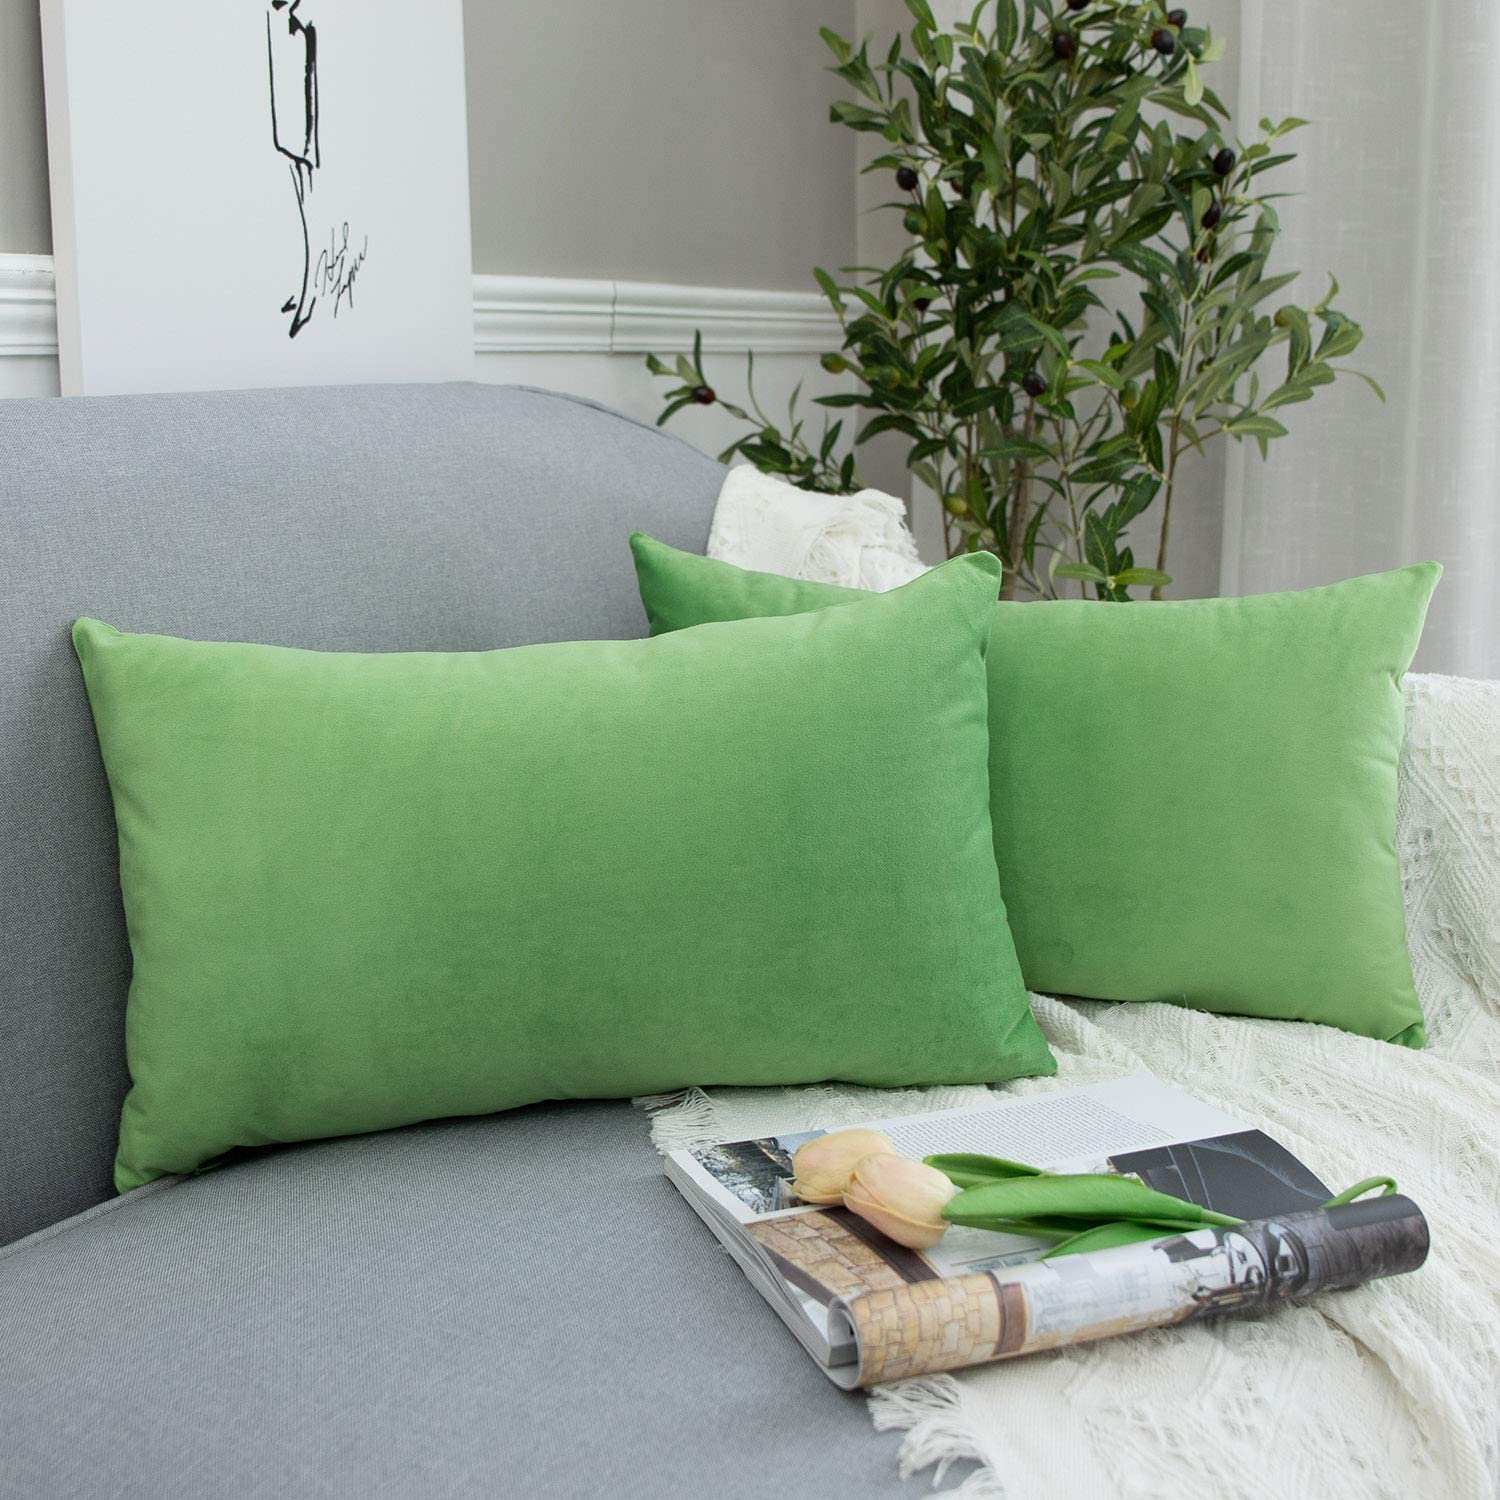 JUSPURBET Decorative Lumbar Velvet Throw Pillows Covers Cases for Couch Bed Sofa,Pack of 2 Luxury Soft Cushion Cases,12x20 Inches,Apple Green